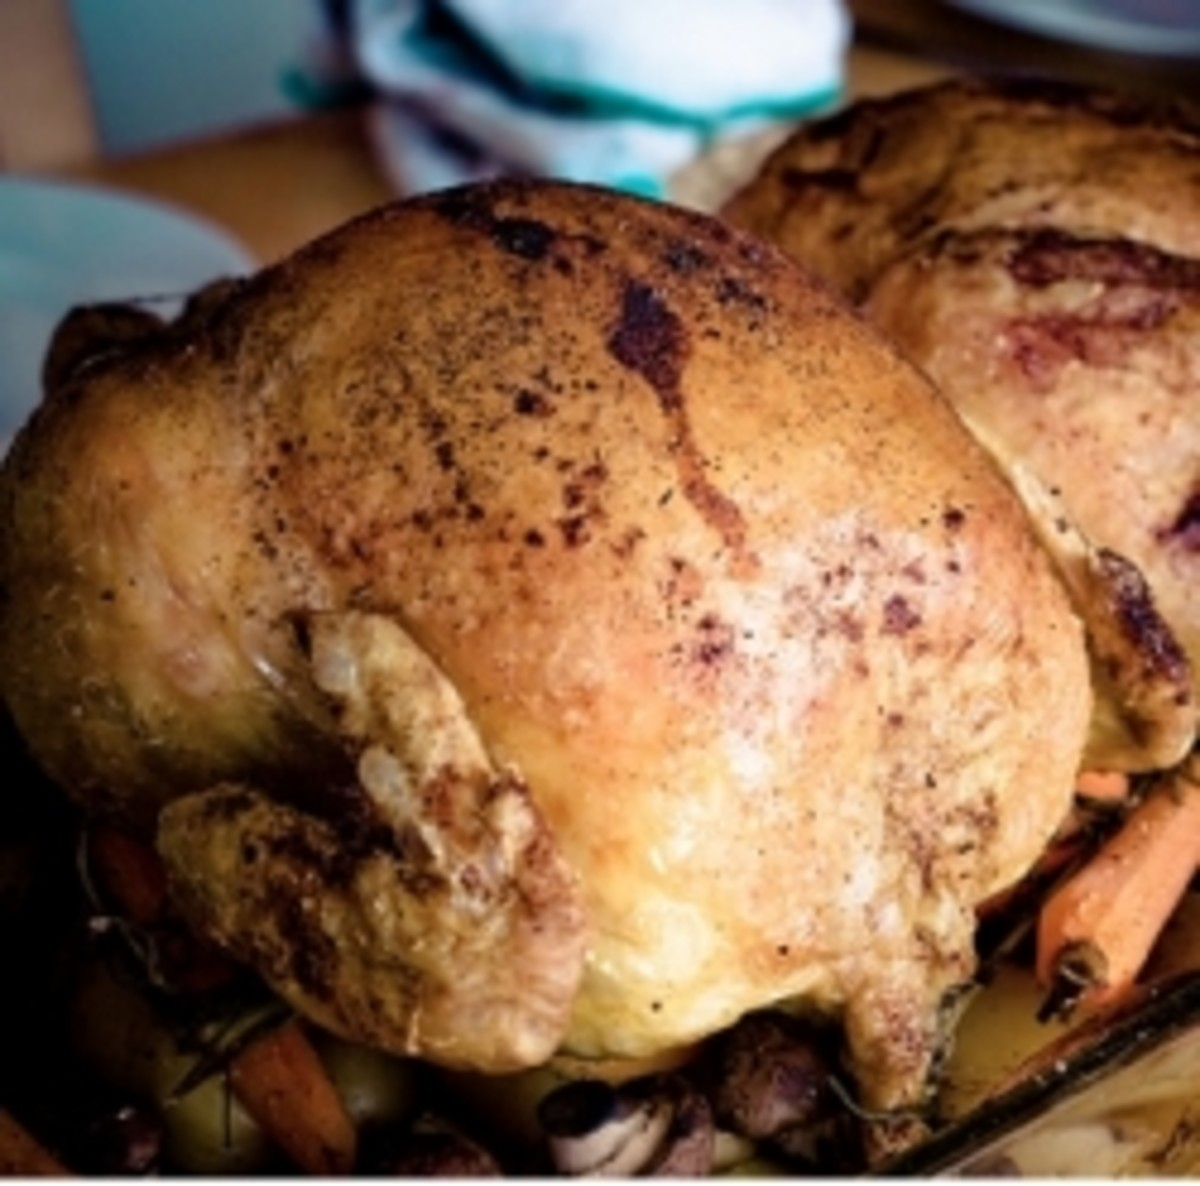 10 Meal Possibilities With Roasted Chicken